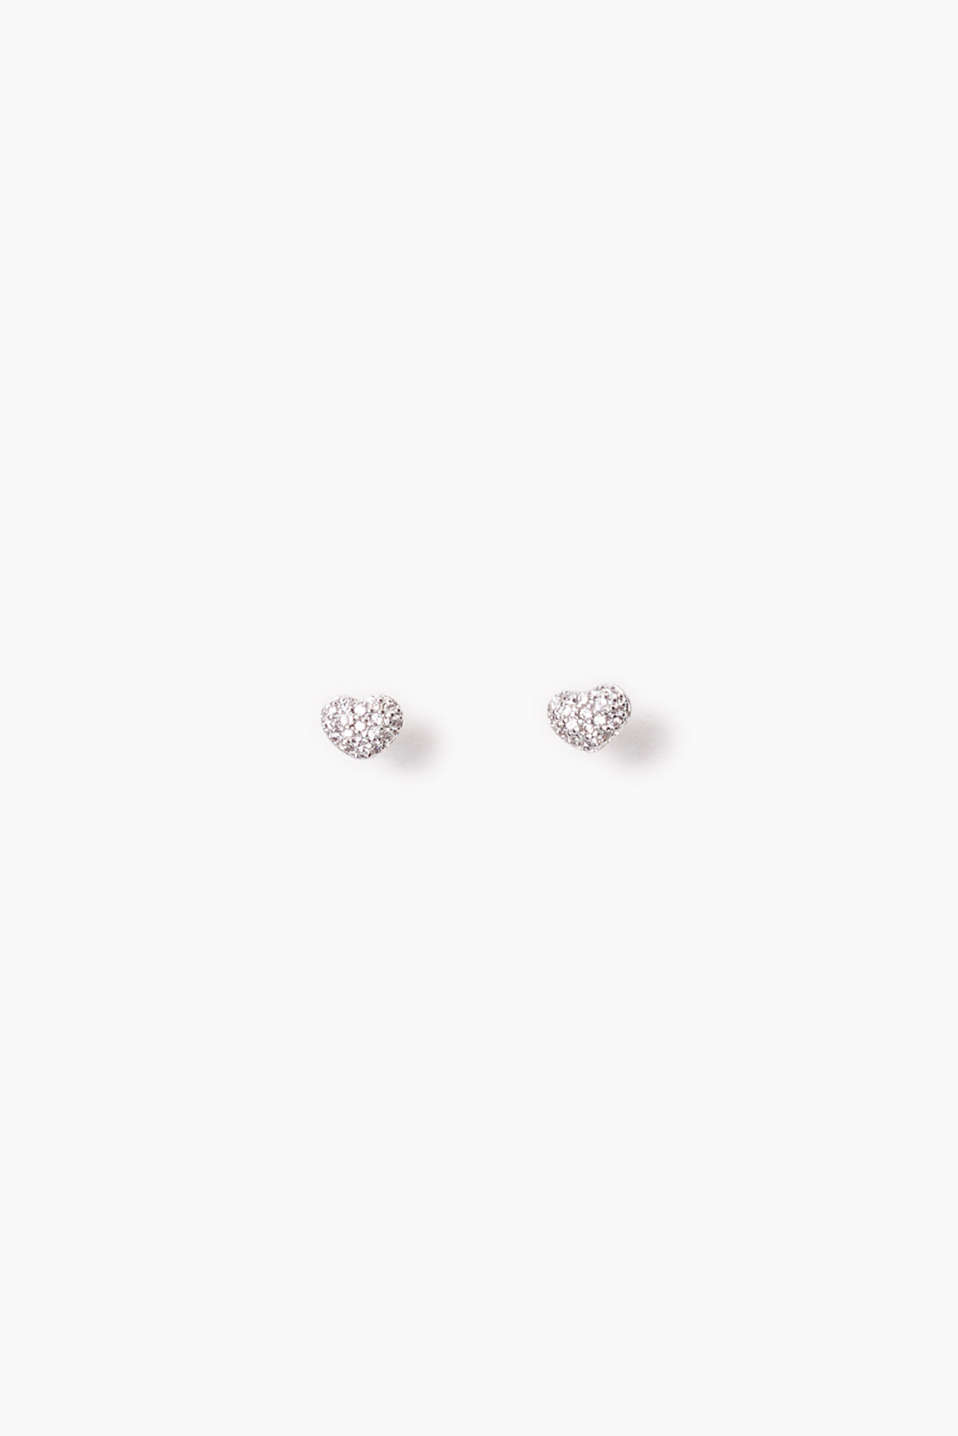 Small heart earrings set with zirconia, stud design